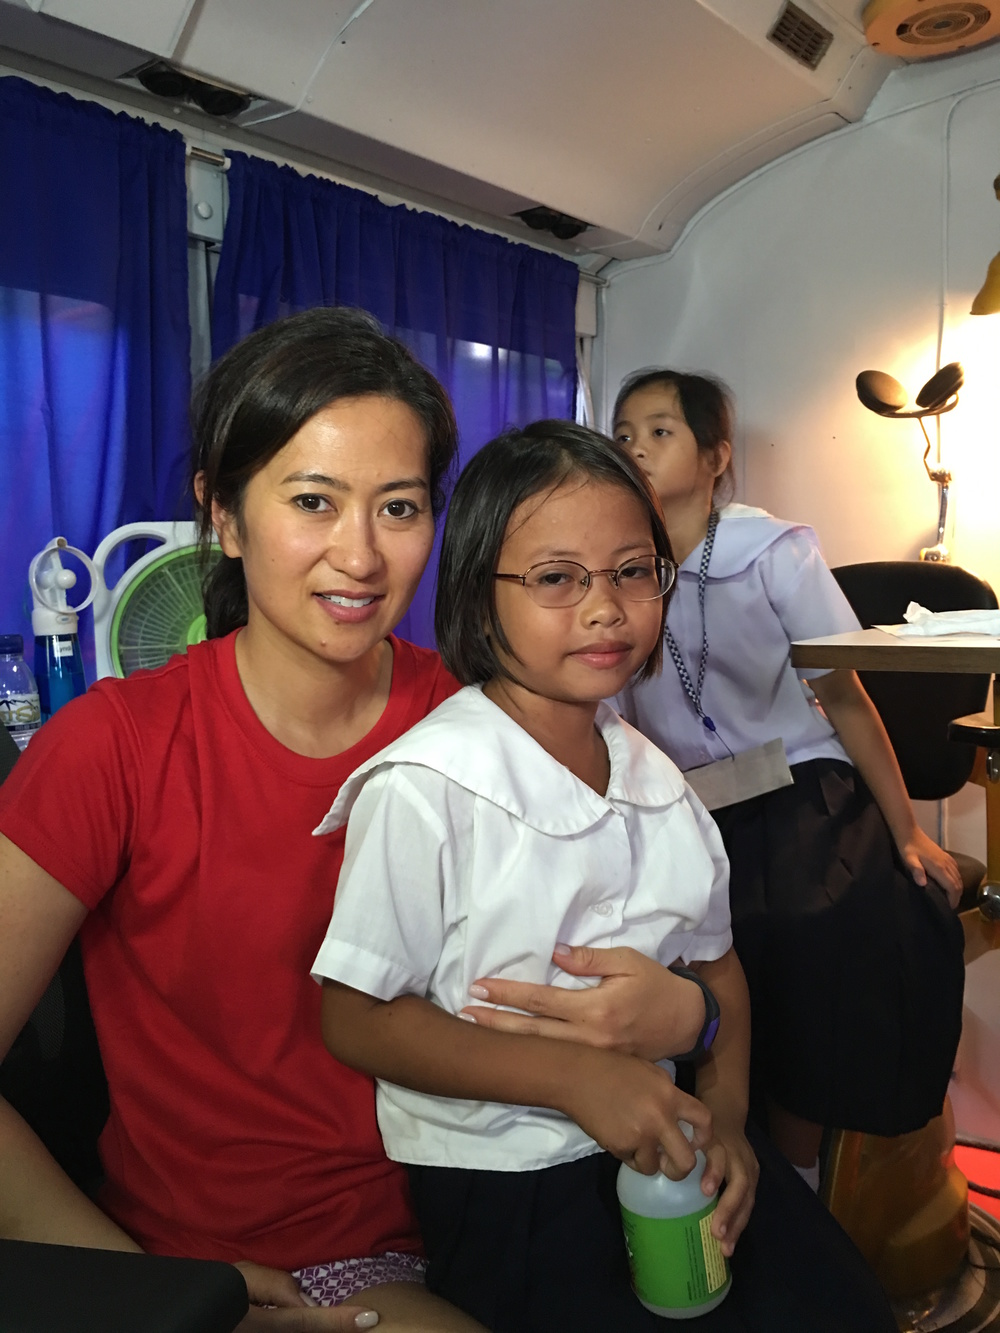 This severely nearsighted 11-year-old girl got her first exam and a new pair of glasses!